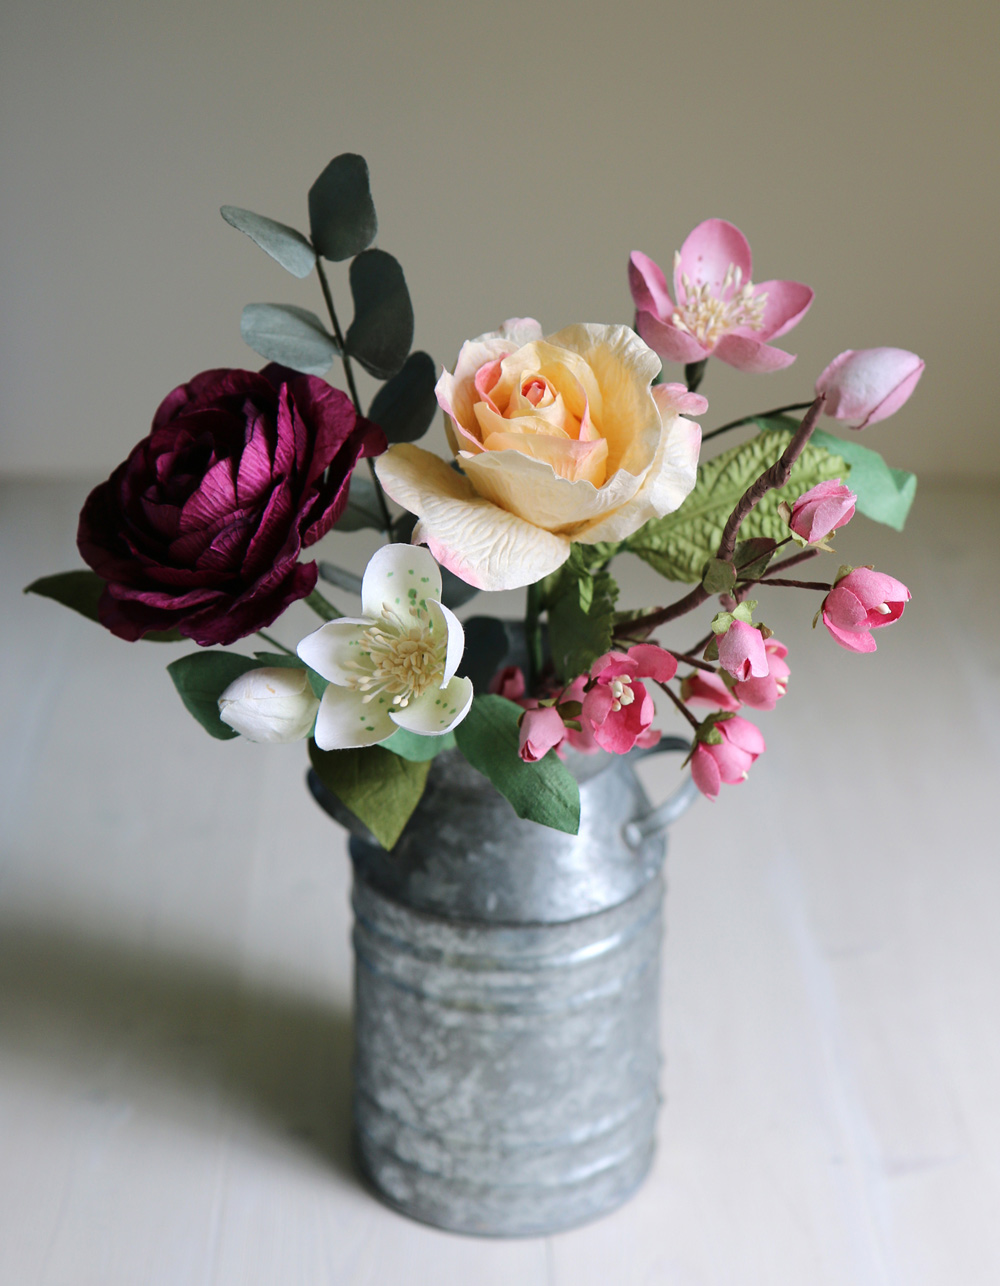 Paper Flower Posy of Spring Flowers